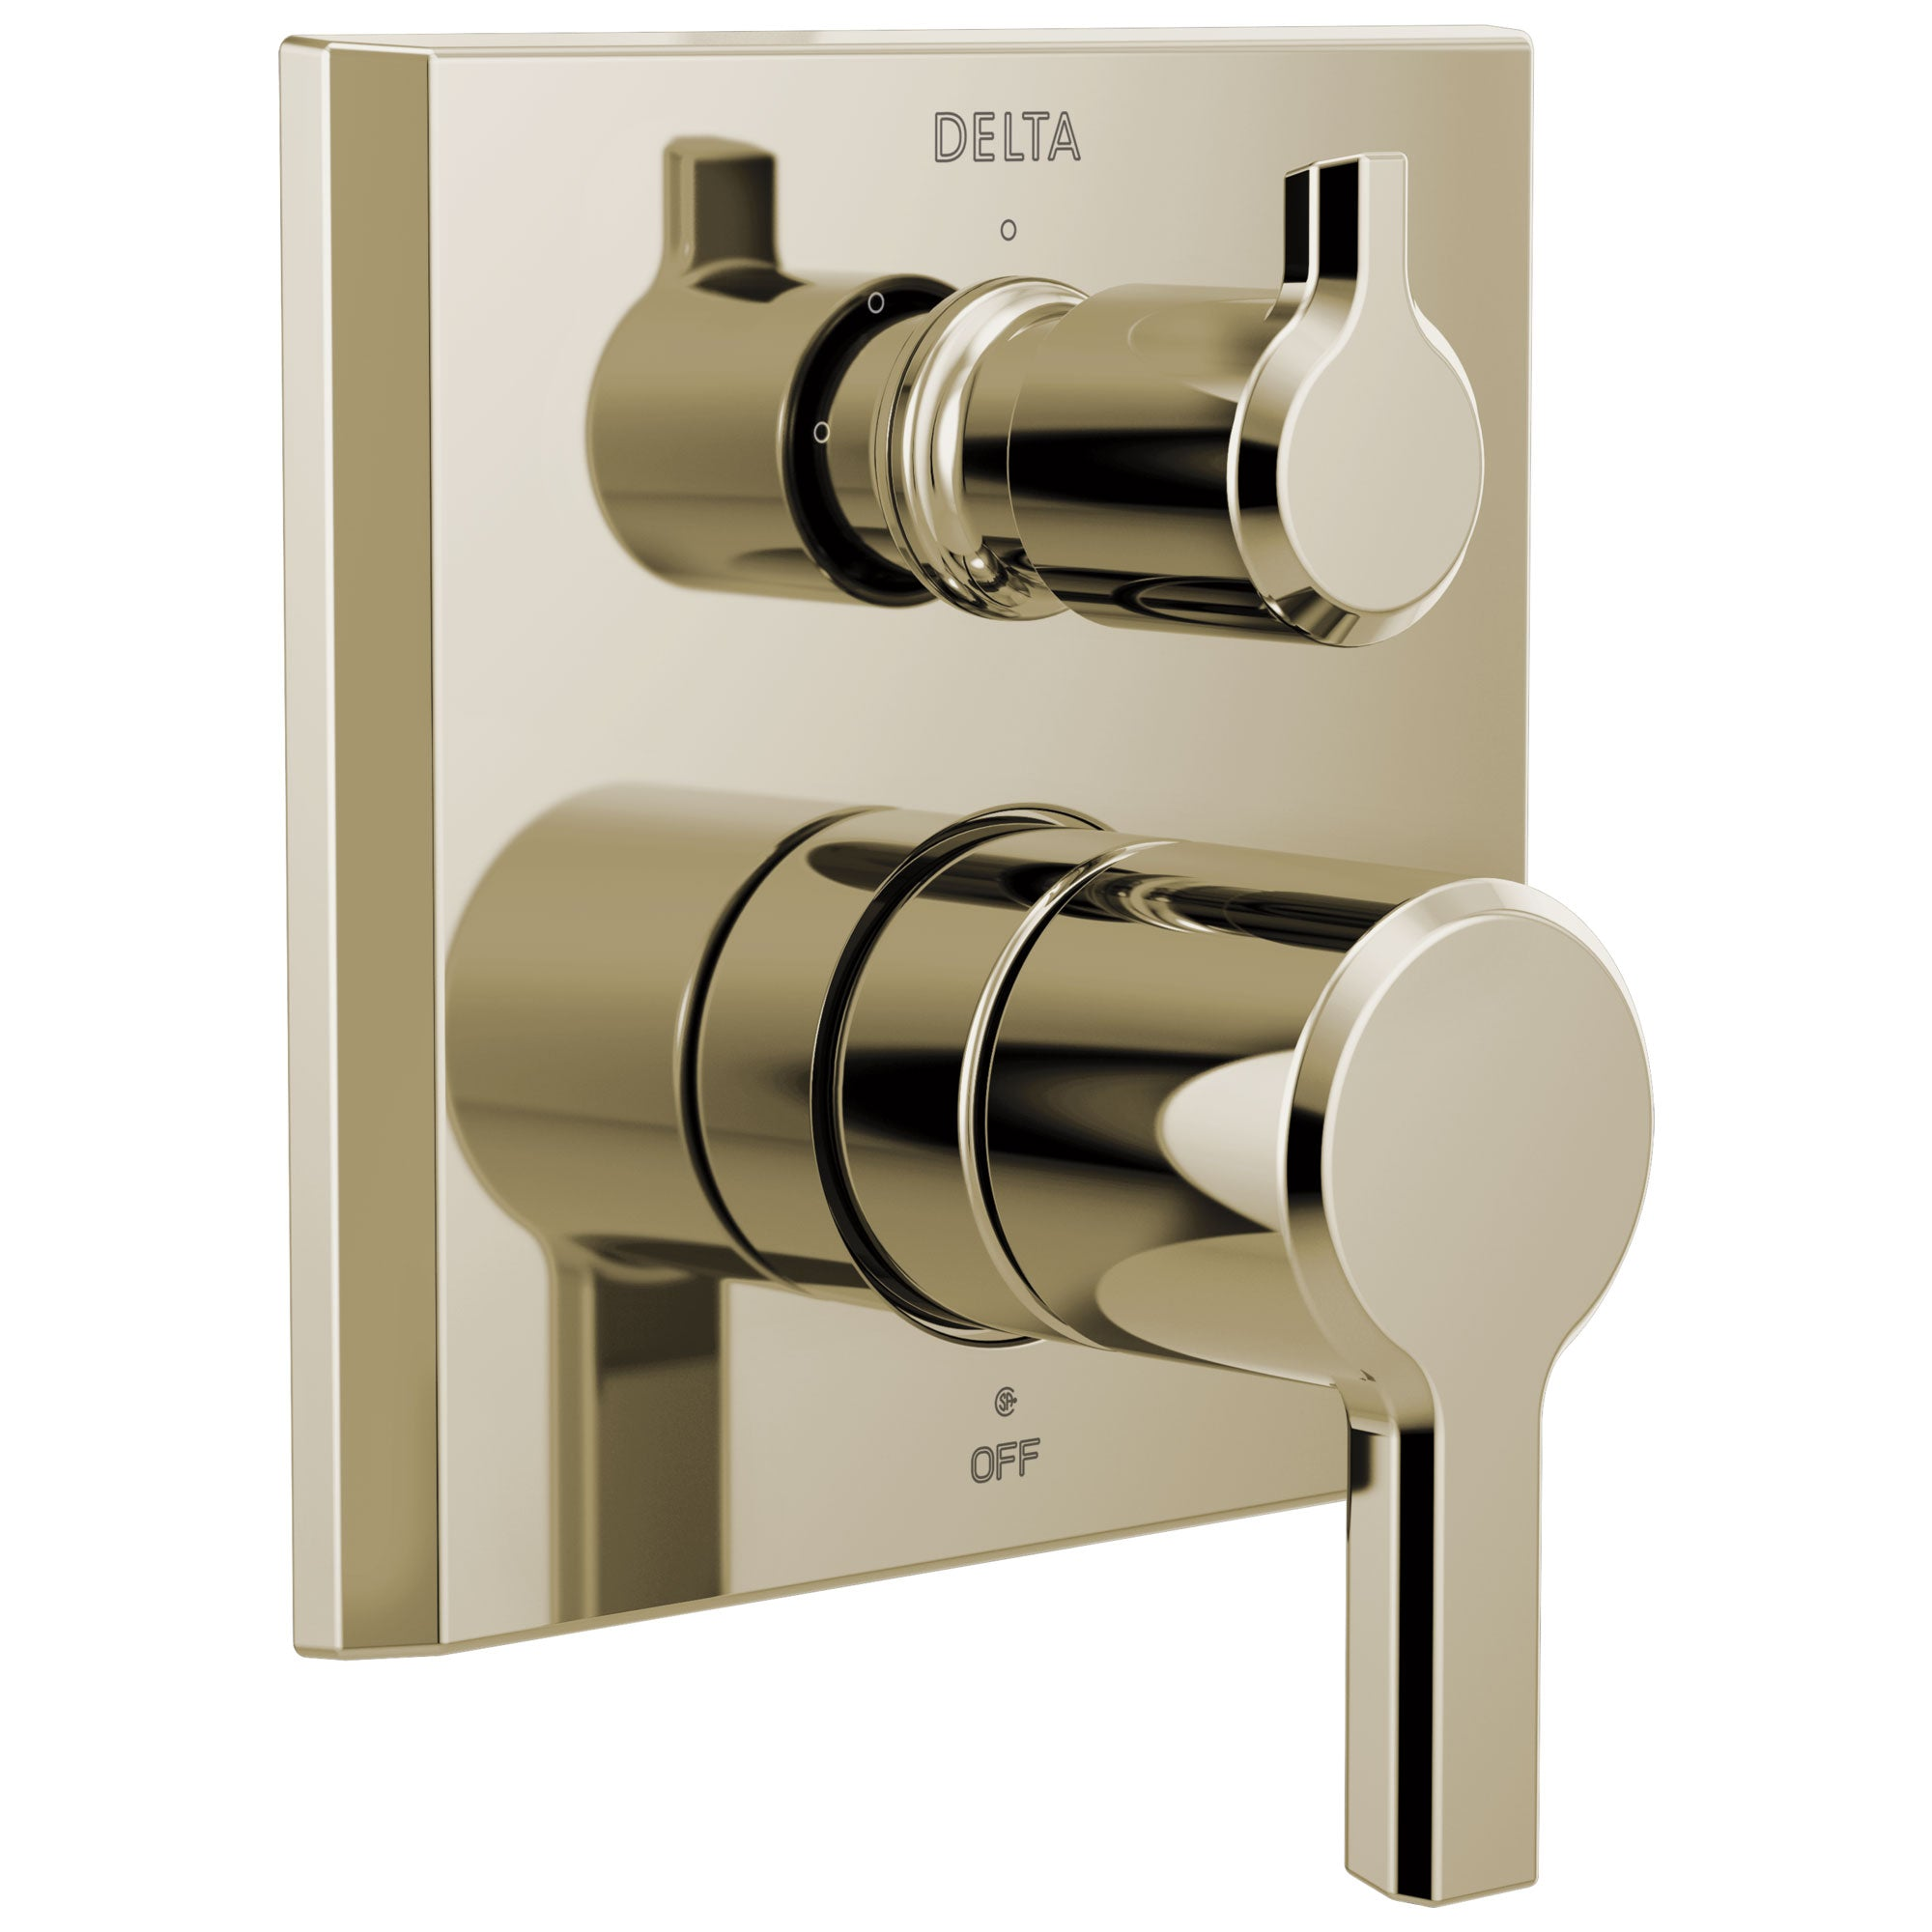 Delta Pivotal Polished Nickel Finish 14 Series Shower Faucet System Control with 3-Setting Integrated Diverter Includes Valve and Handles D3189V